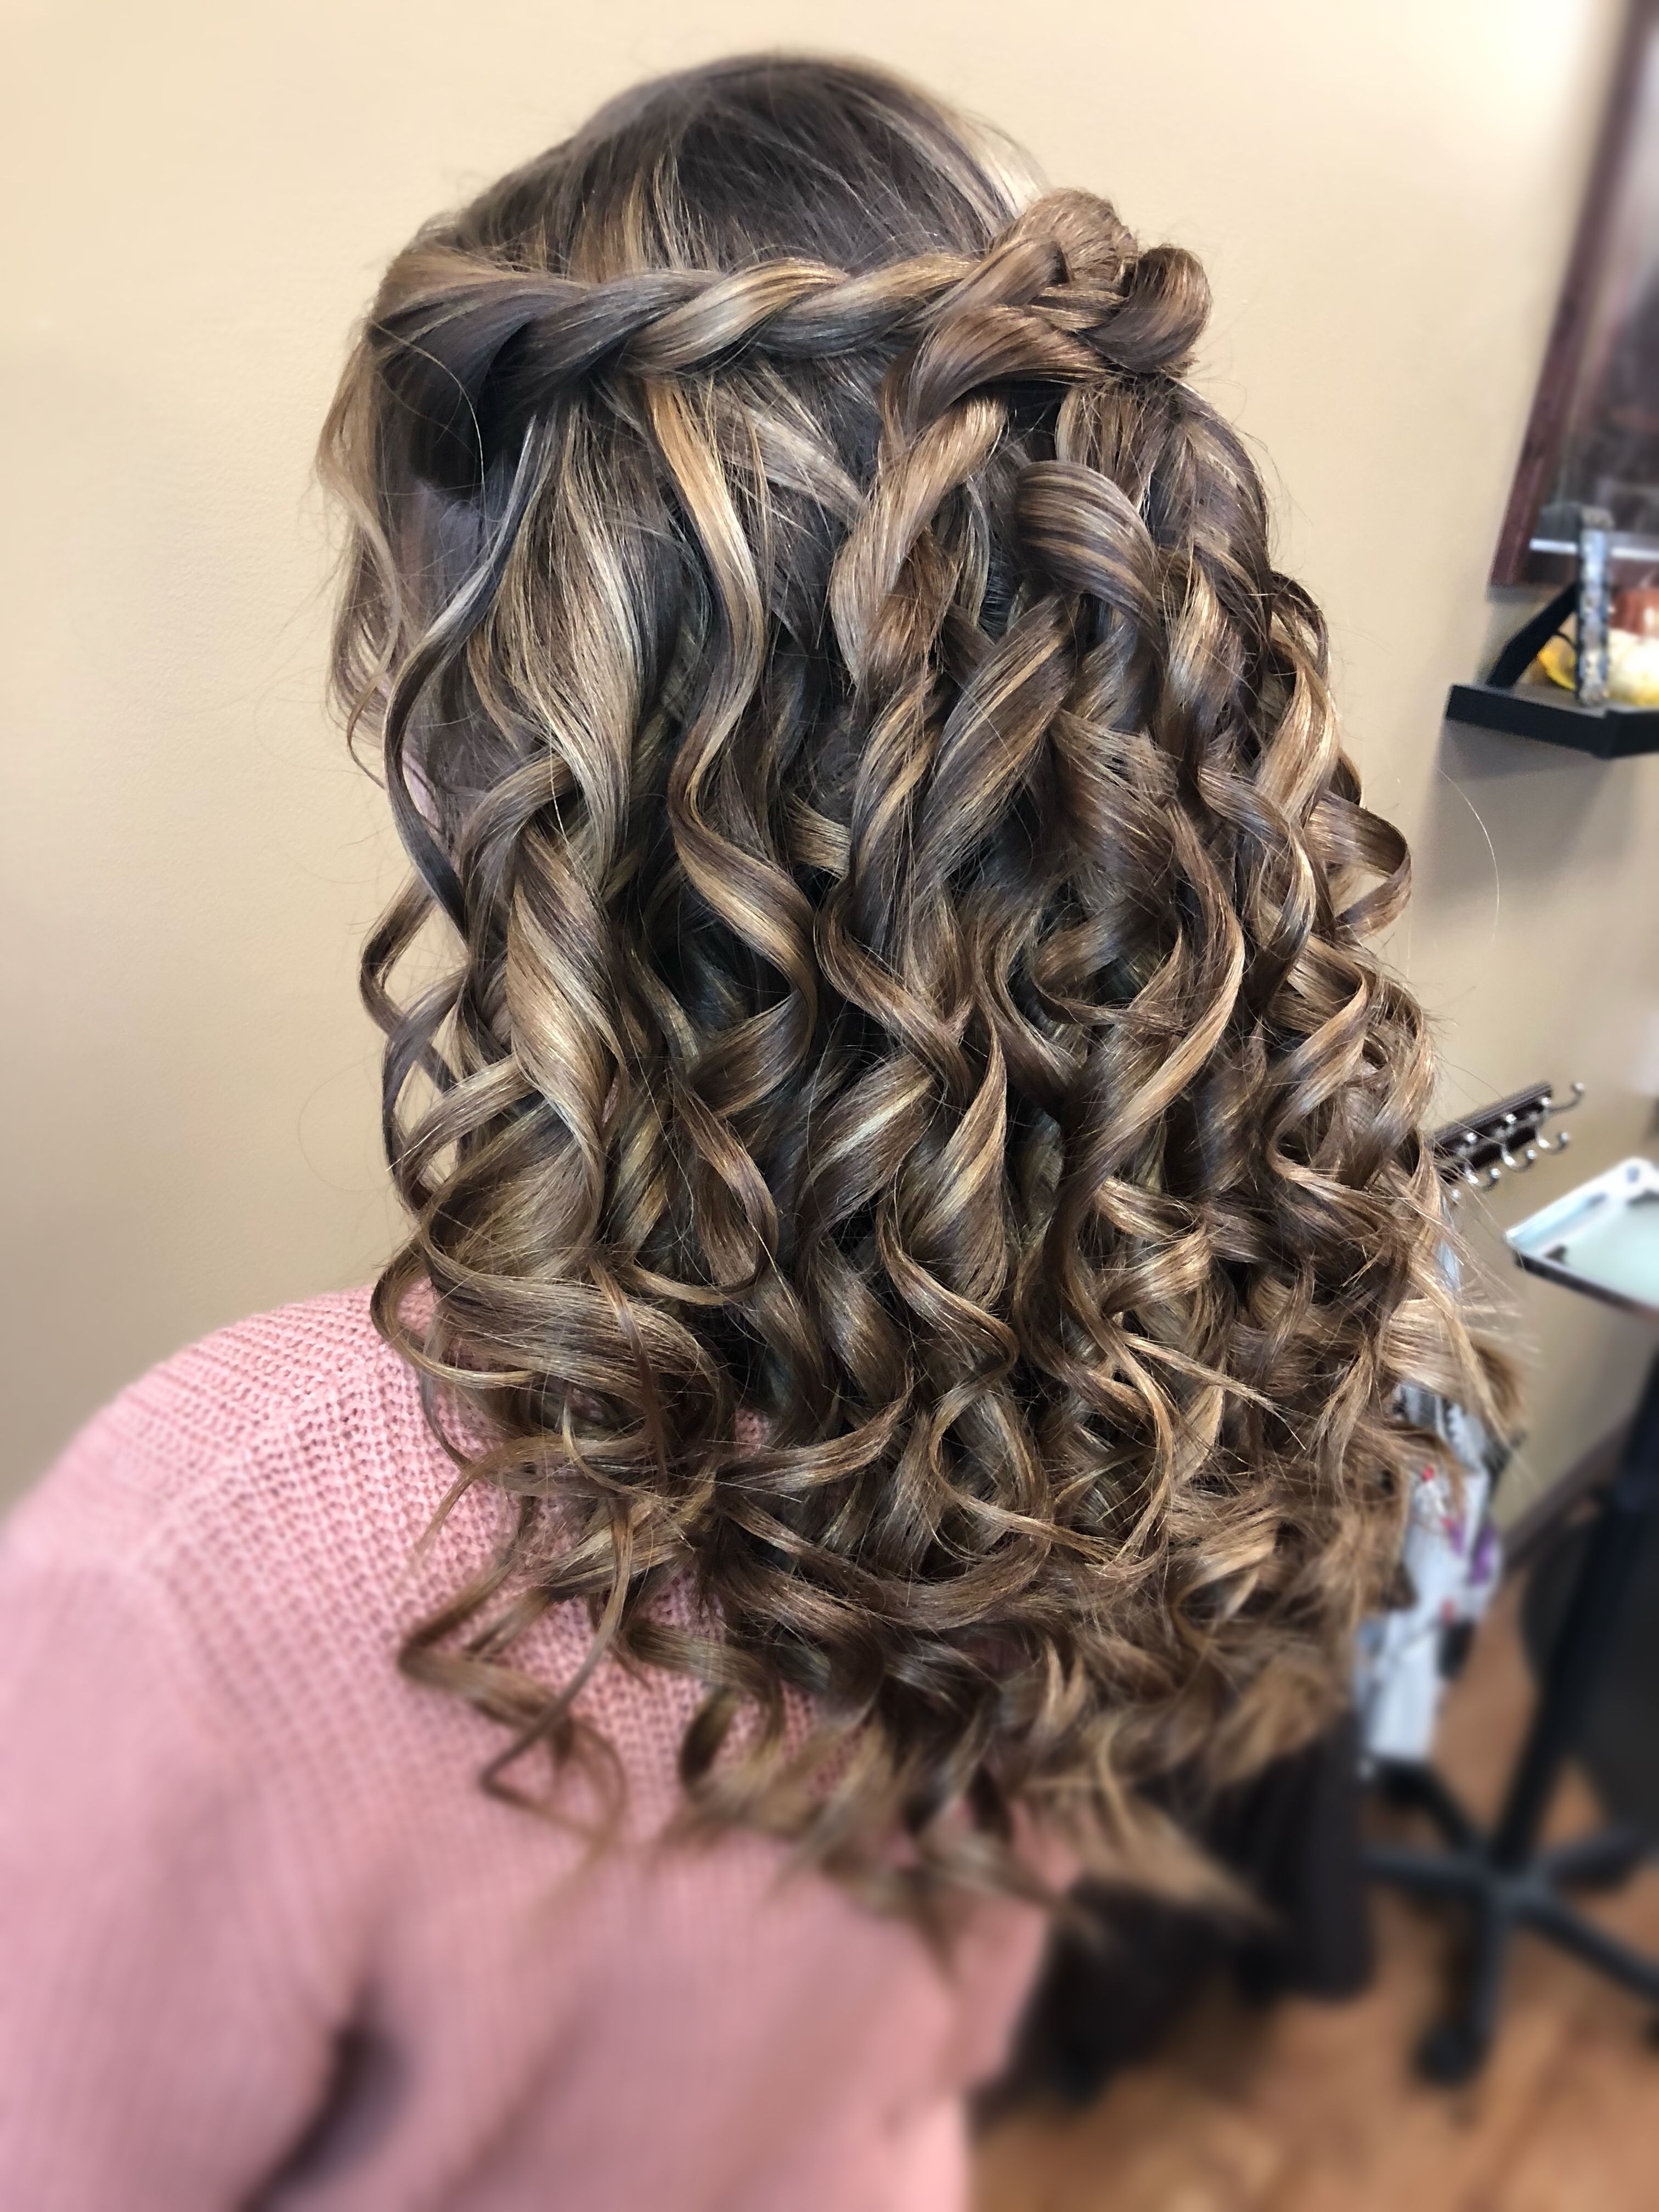 Homecoming hair 2018 wand curls (With images) | Homecoming ...